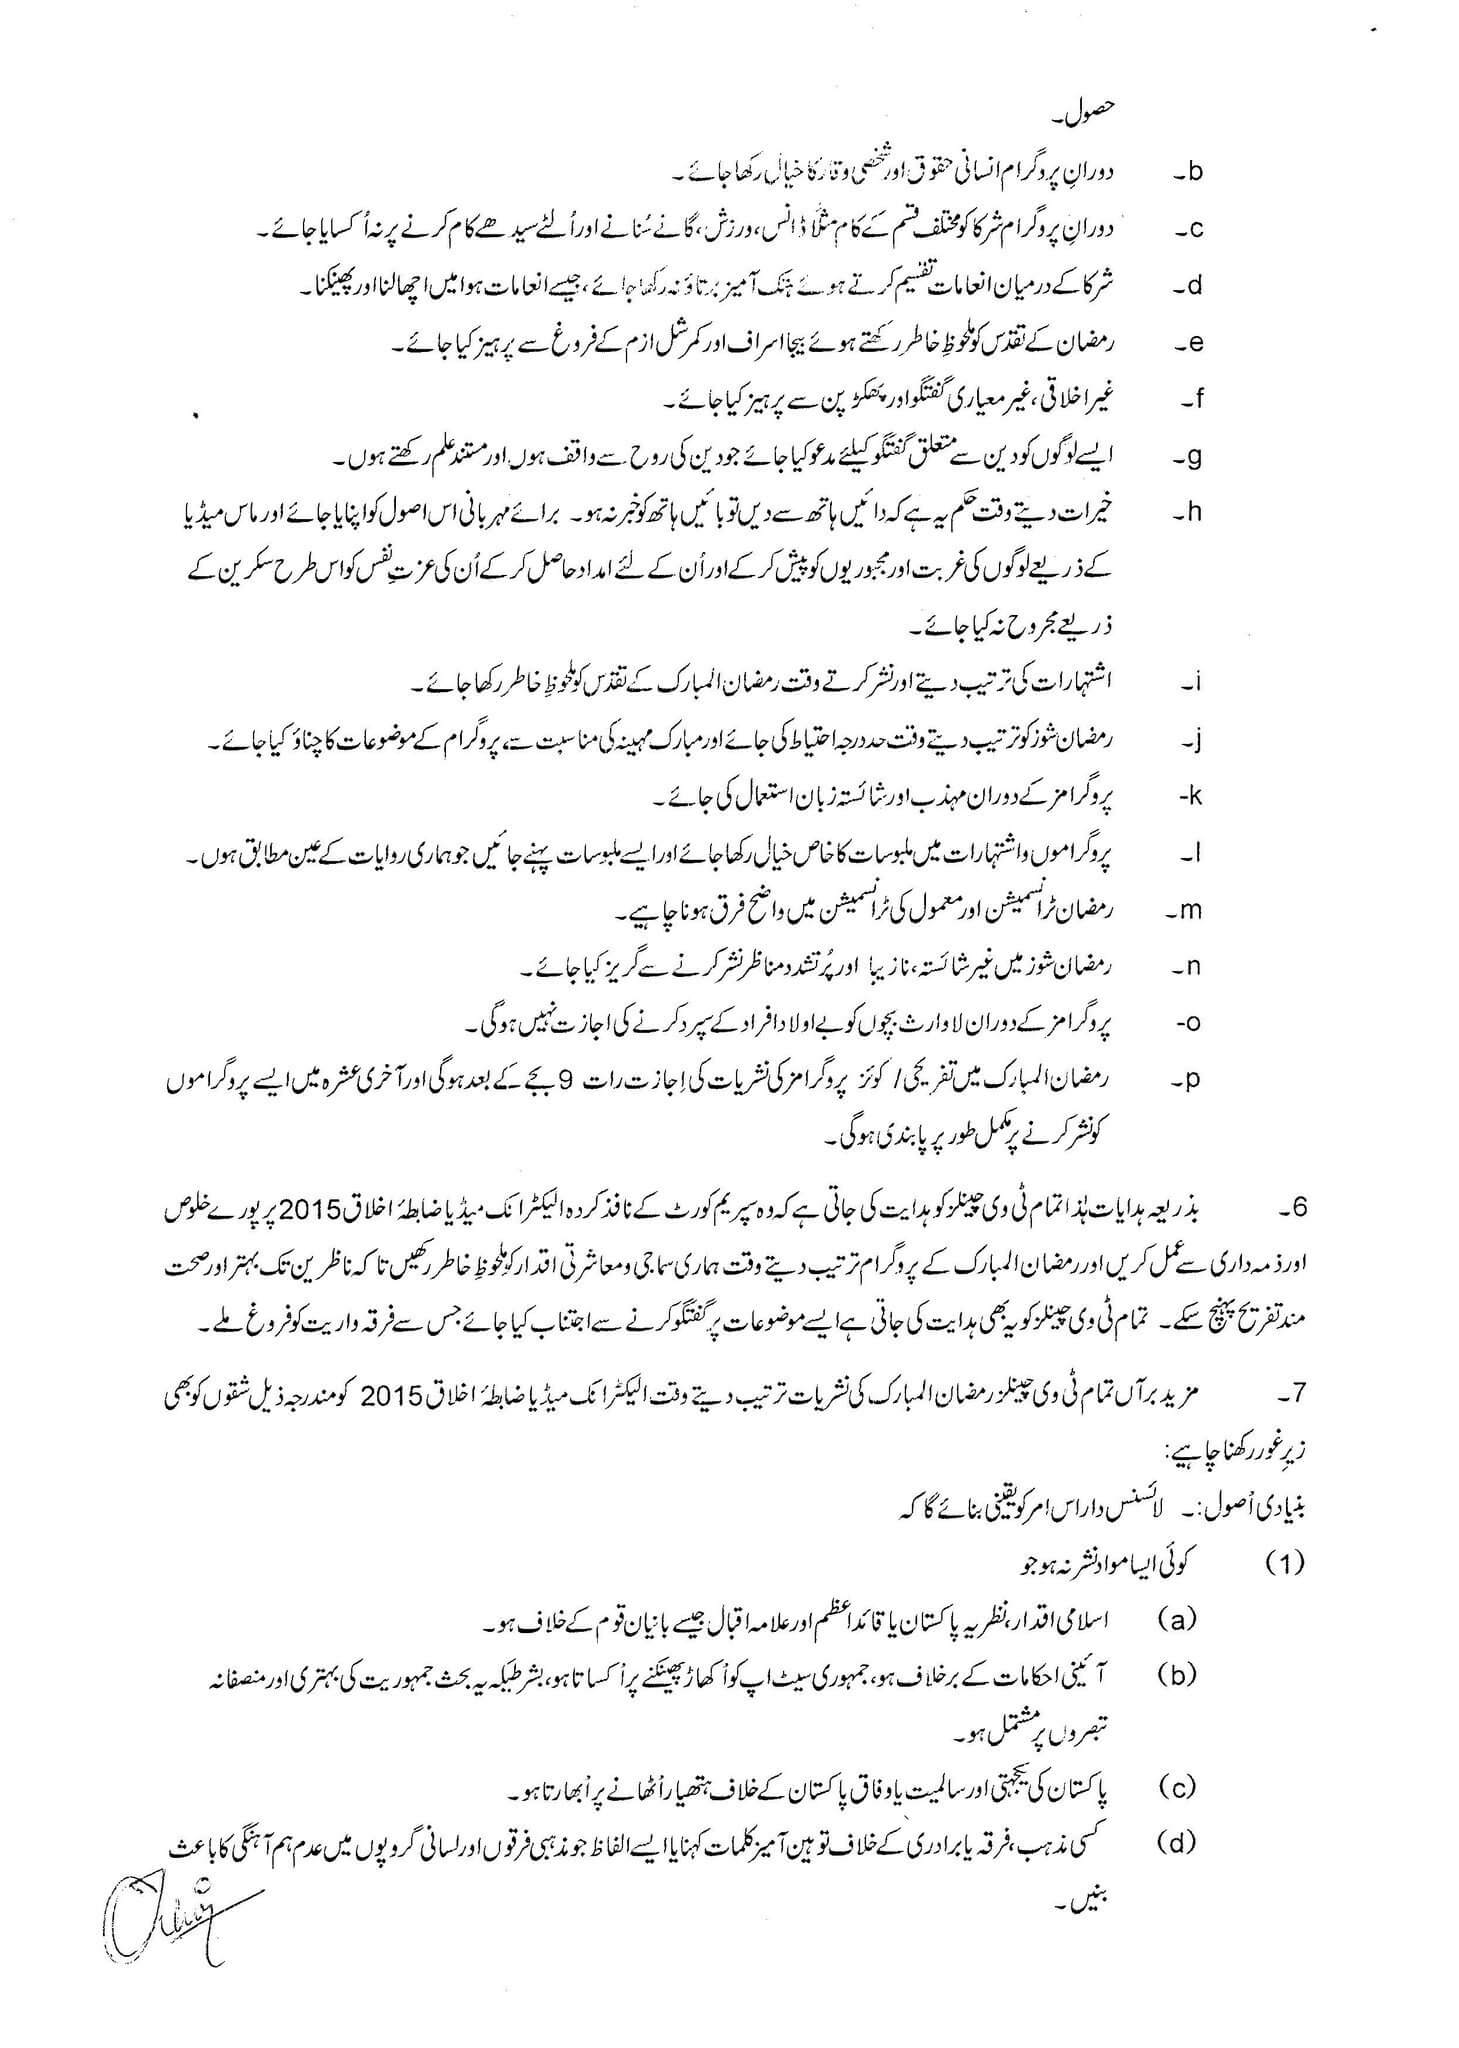 ramazan transmission rules by pemra (5)